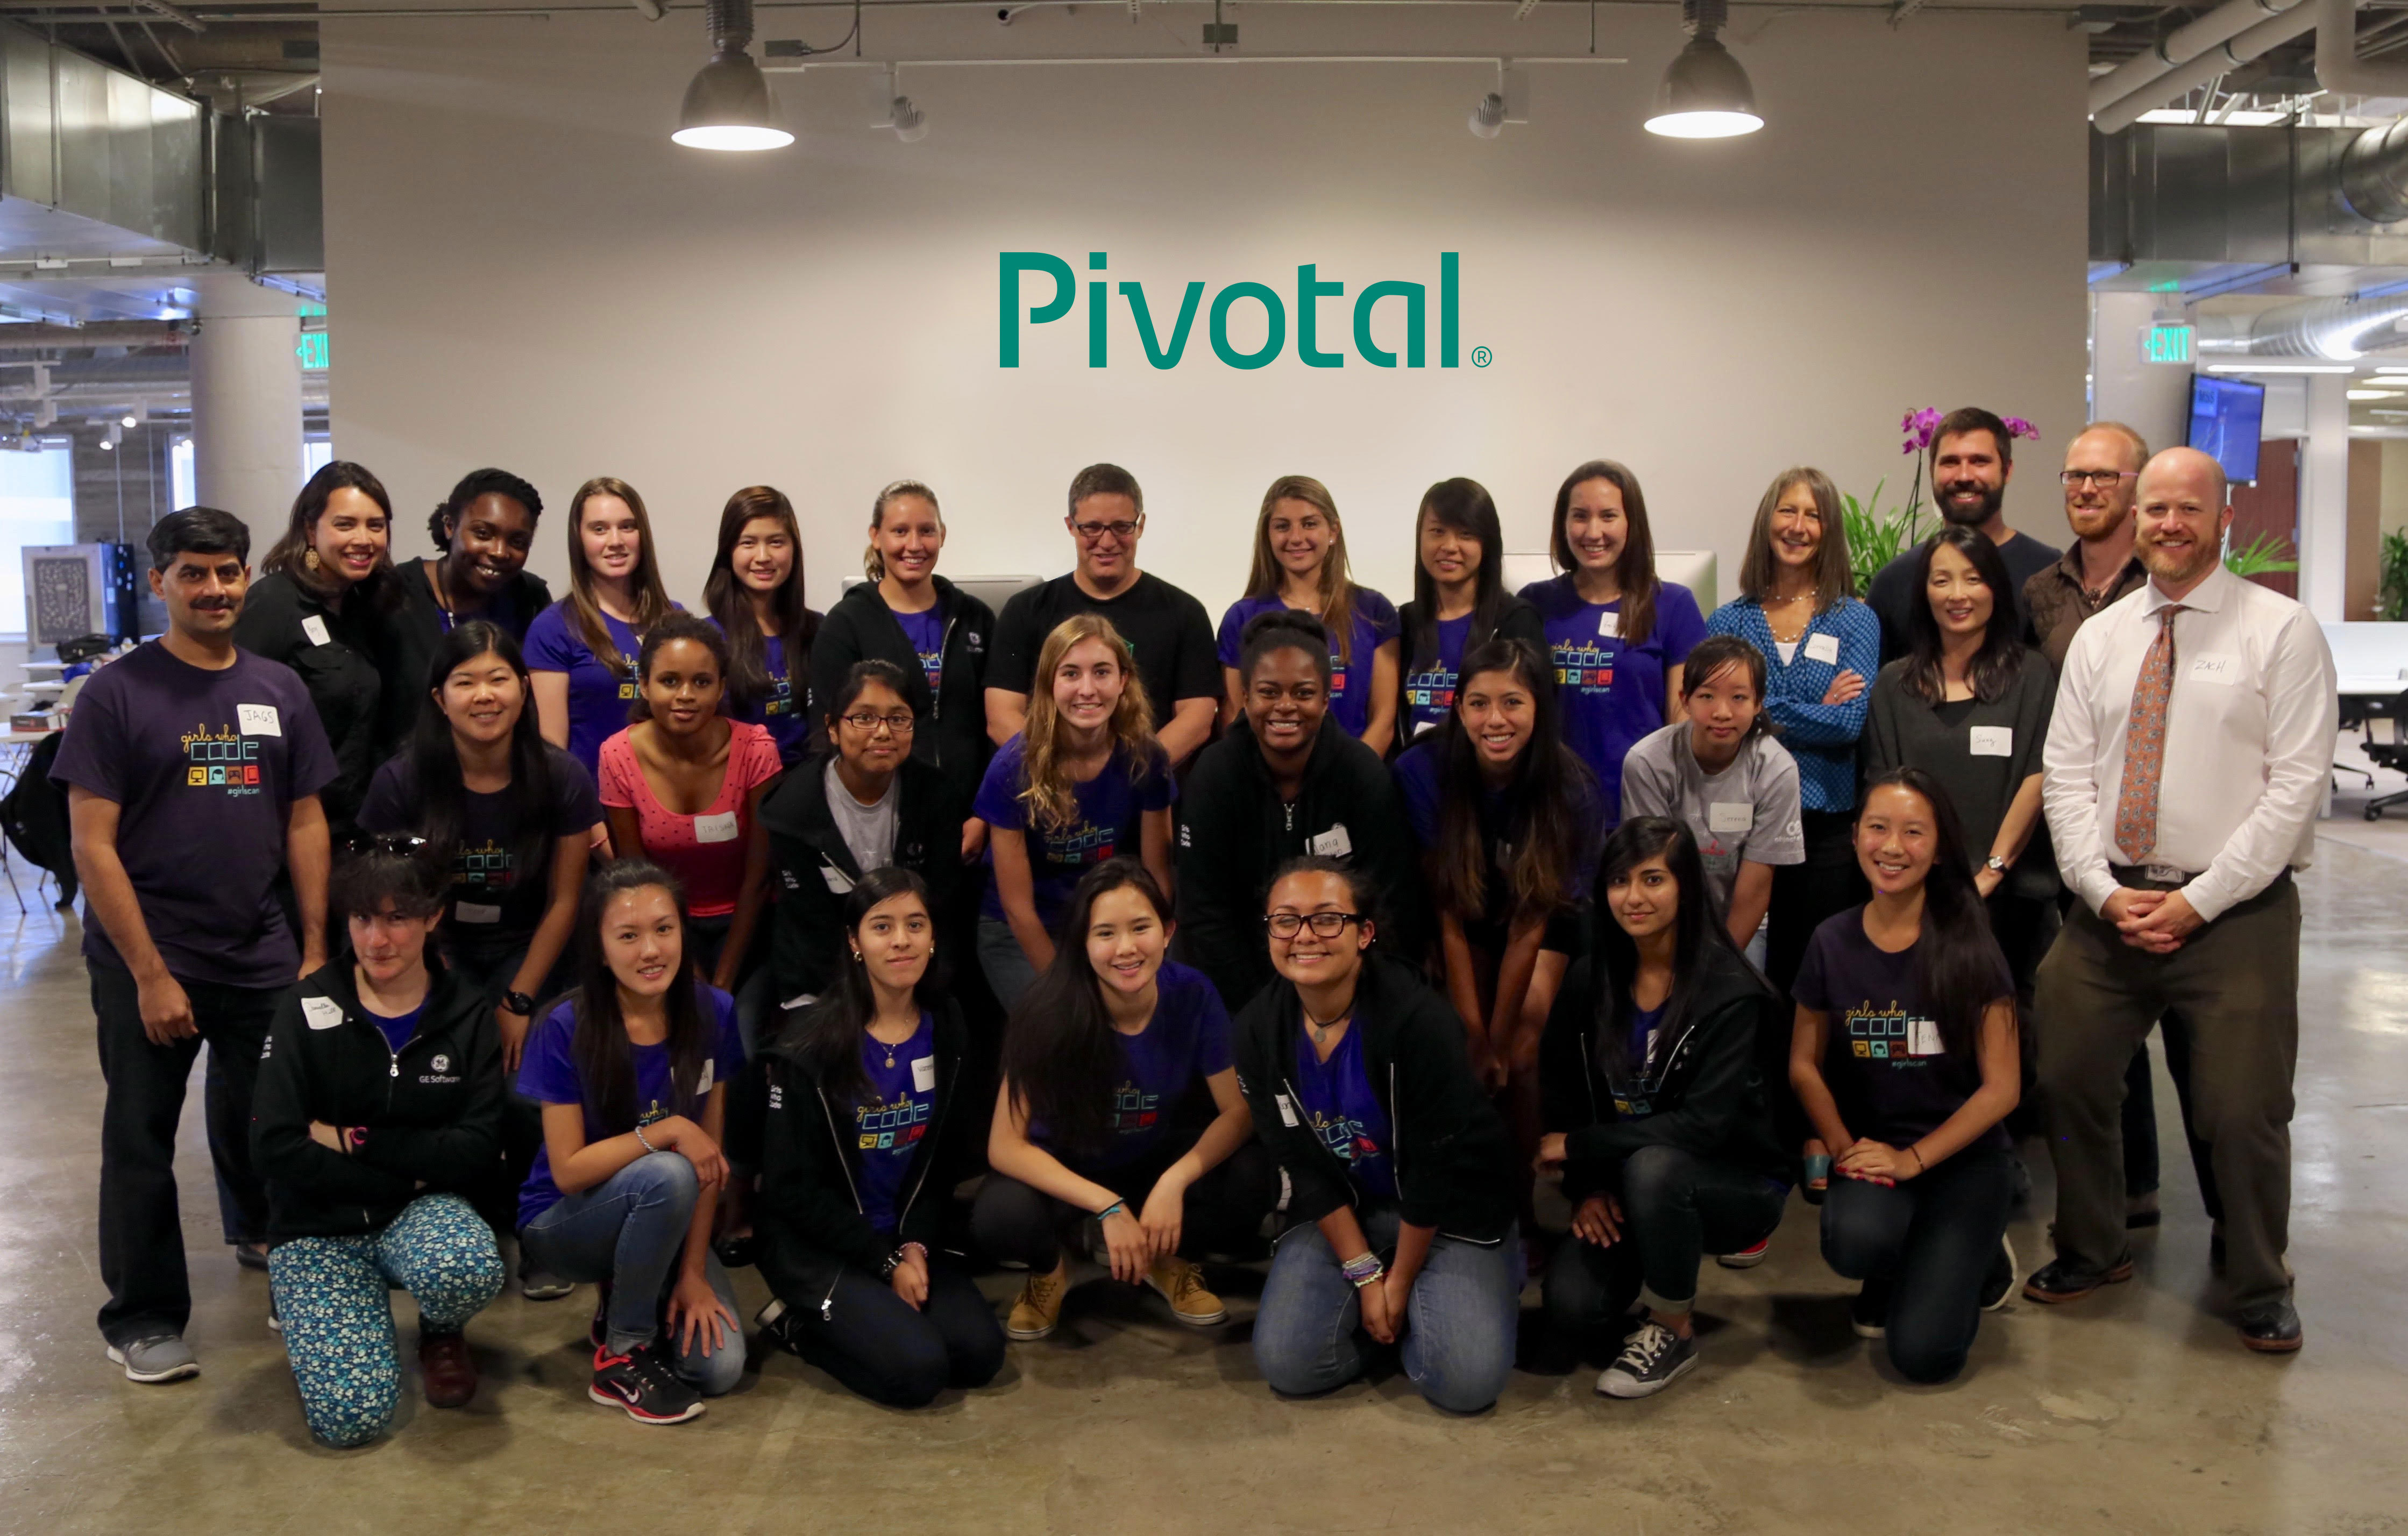 Pivotal CEO Rob Mee poses with teens taking part in Girls Who Code summer immersion and mentorship program held at Pivotal. (Photo: Business Wire)